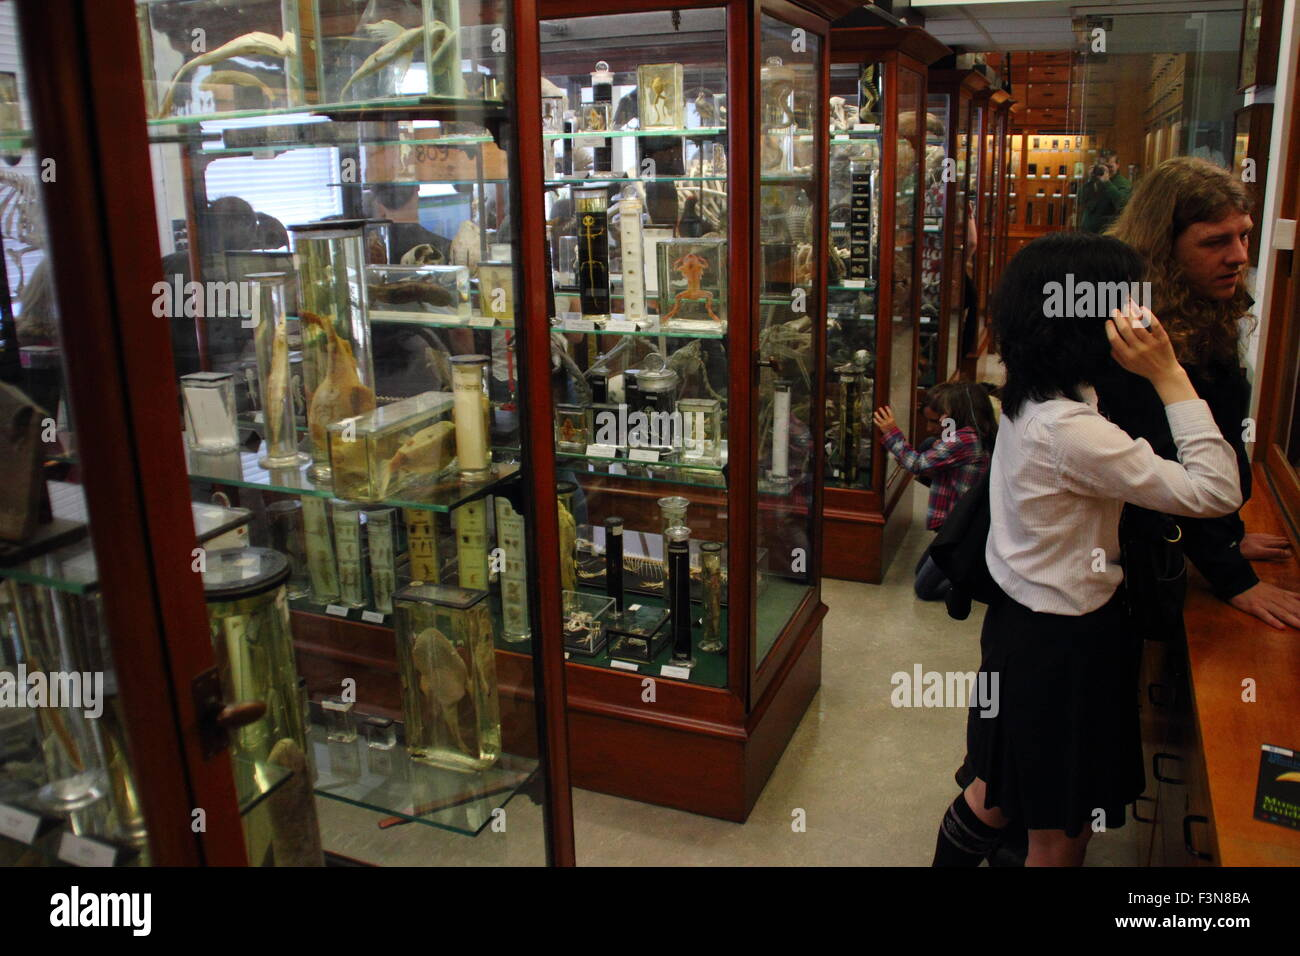 A man and woman peruse zoological exhibits inside the Alfred Denny Museum at the University of Sheffield, Yorkshire - Stock Image